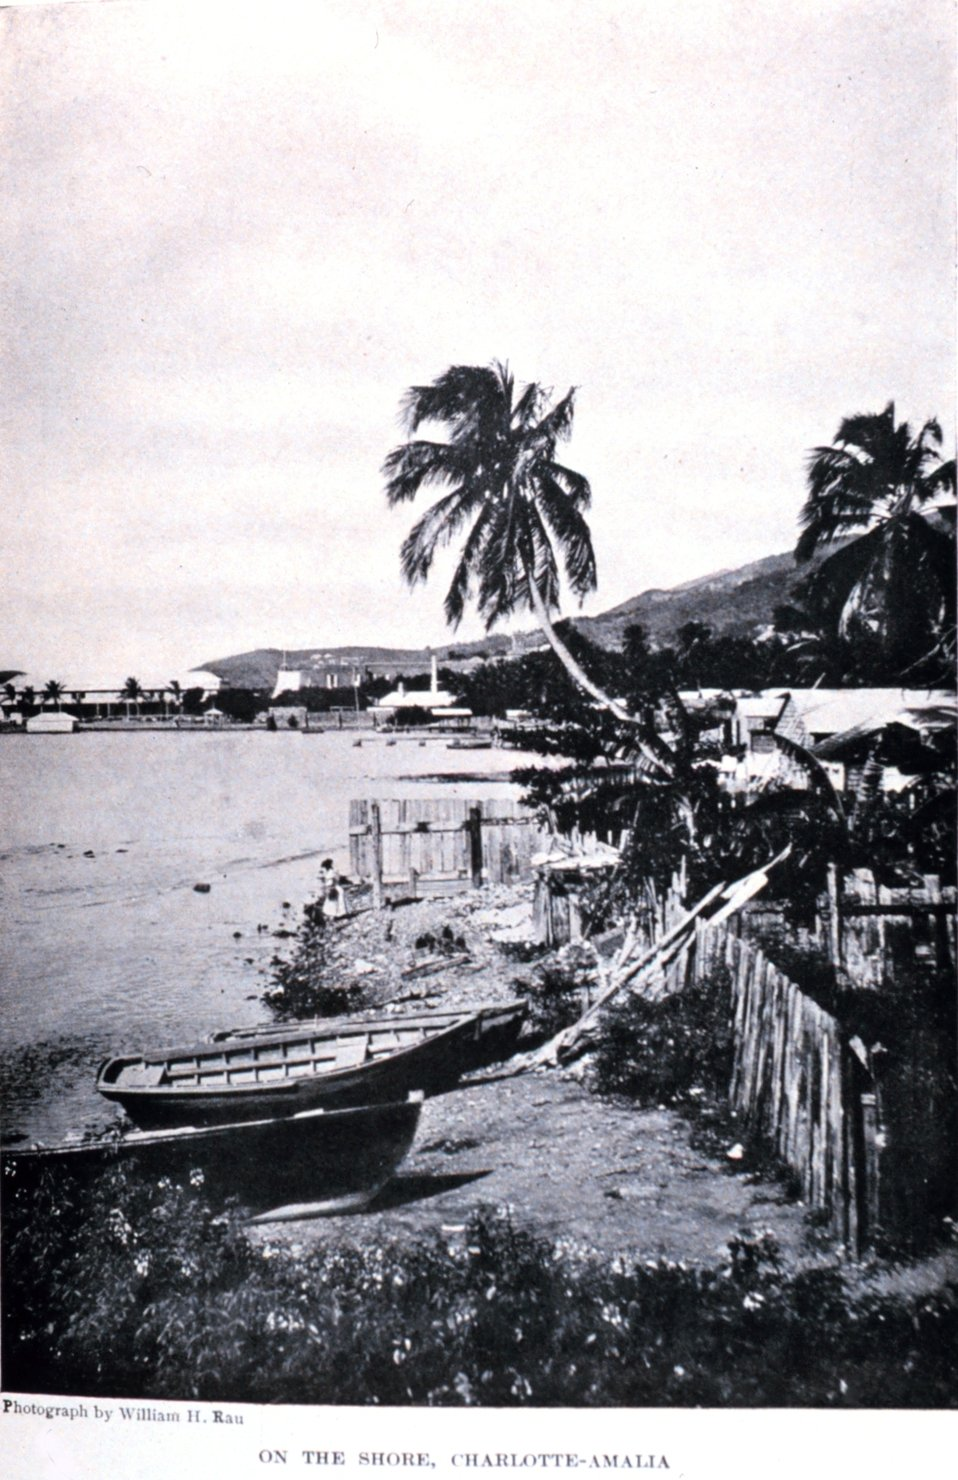 'On the Shore, Charlotte-Amalia.'  In: 'The Virgin Islands Our New Possessions and the British Islands', by Theodoor De Booy and John T. Faris, 1918.  J. B. Lippincott and Company, Philadelphia.  P. 266.  Library Call Number C/hc100 V81 B.